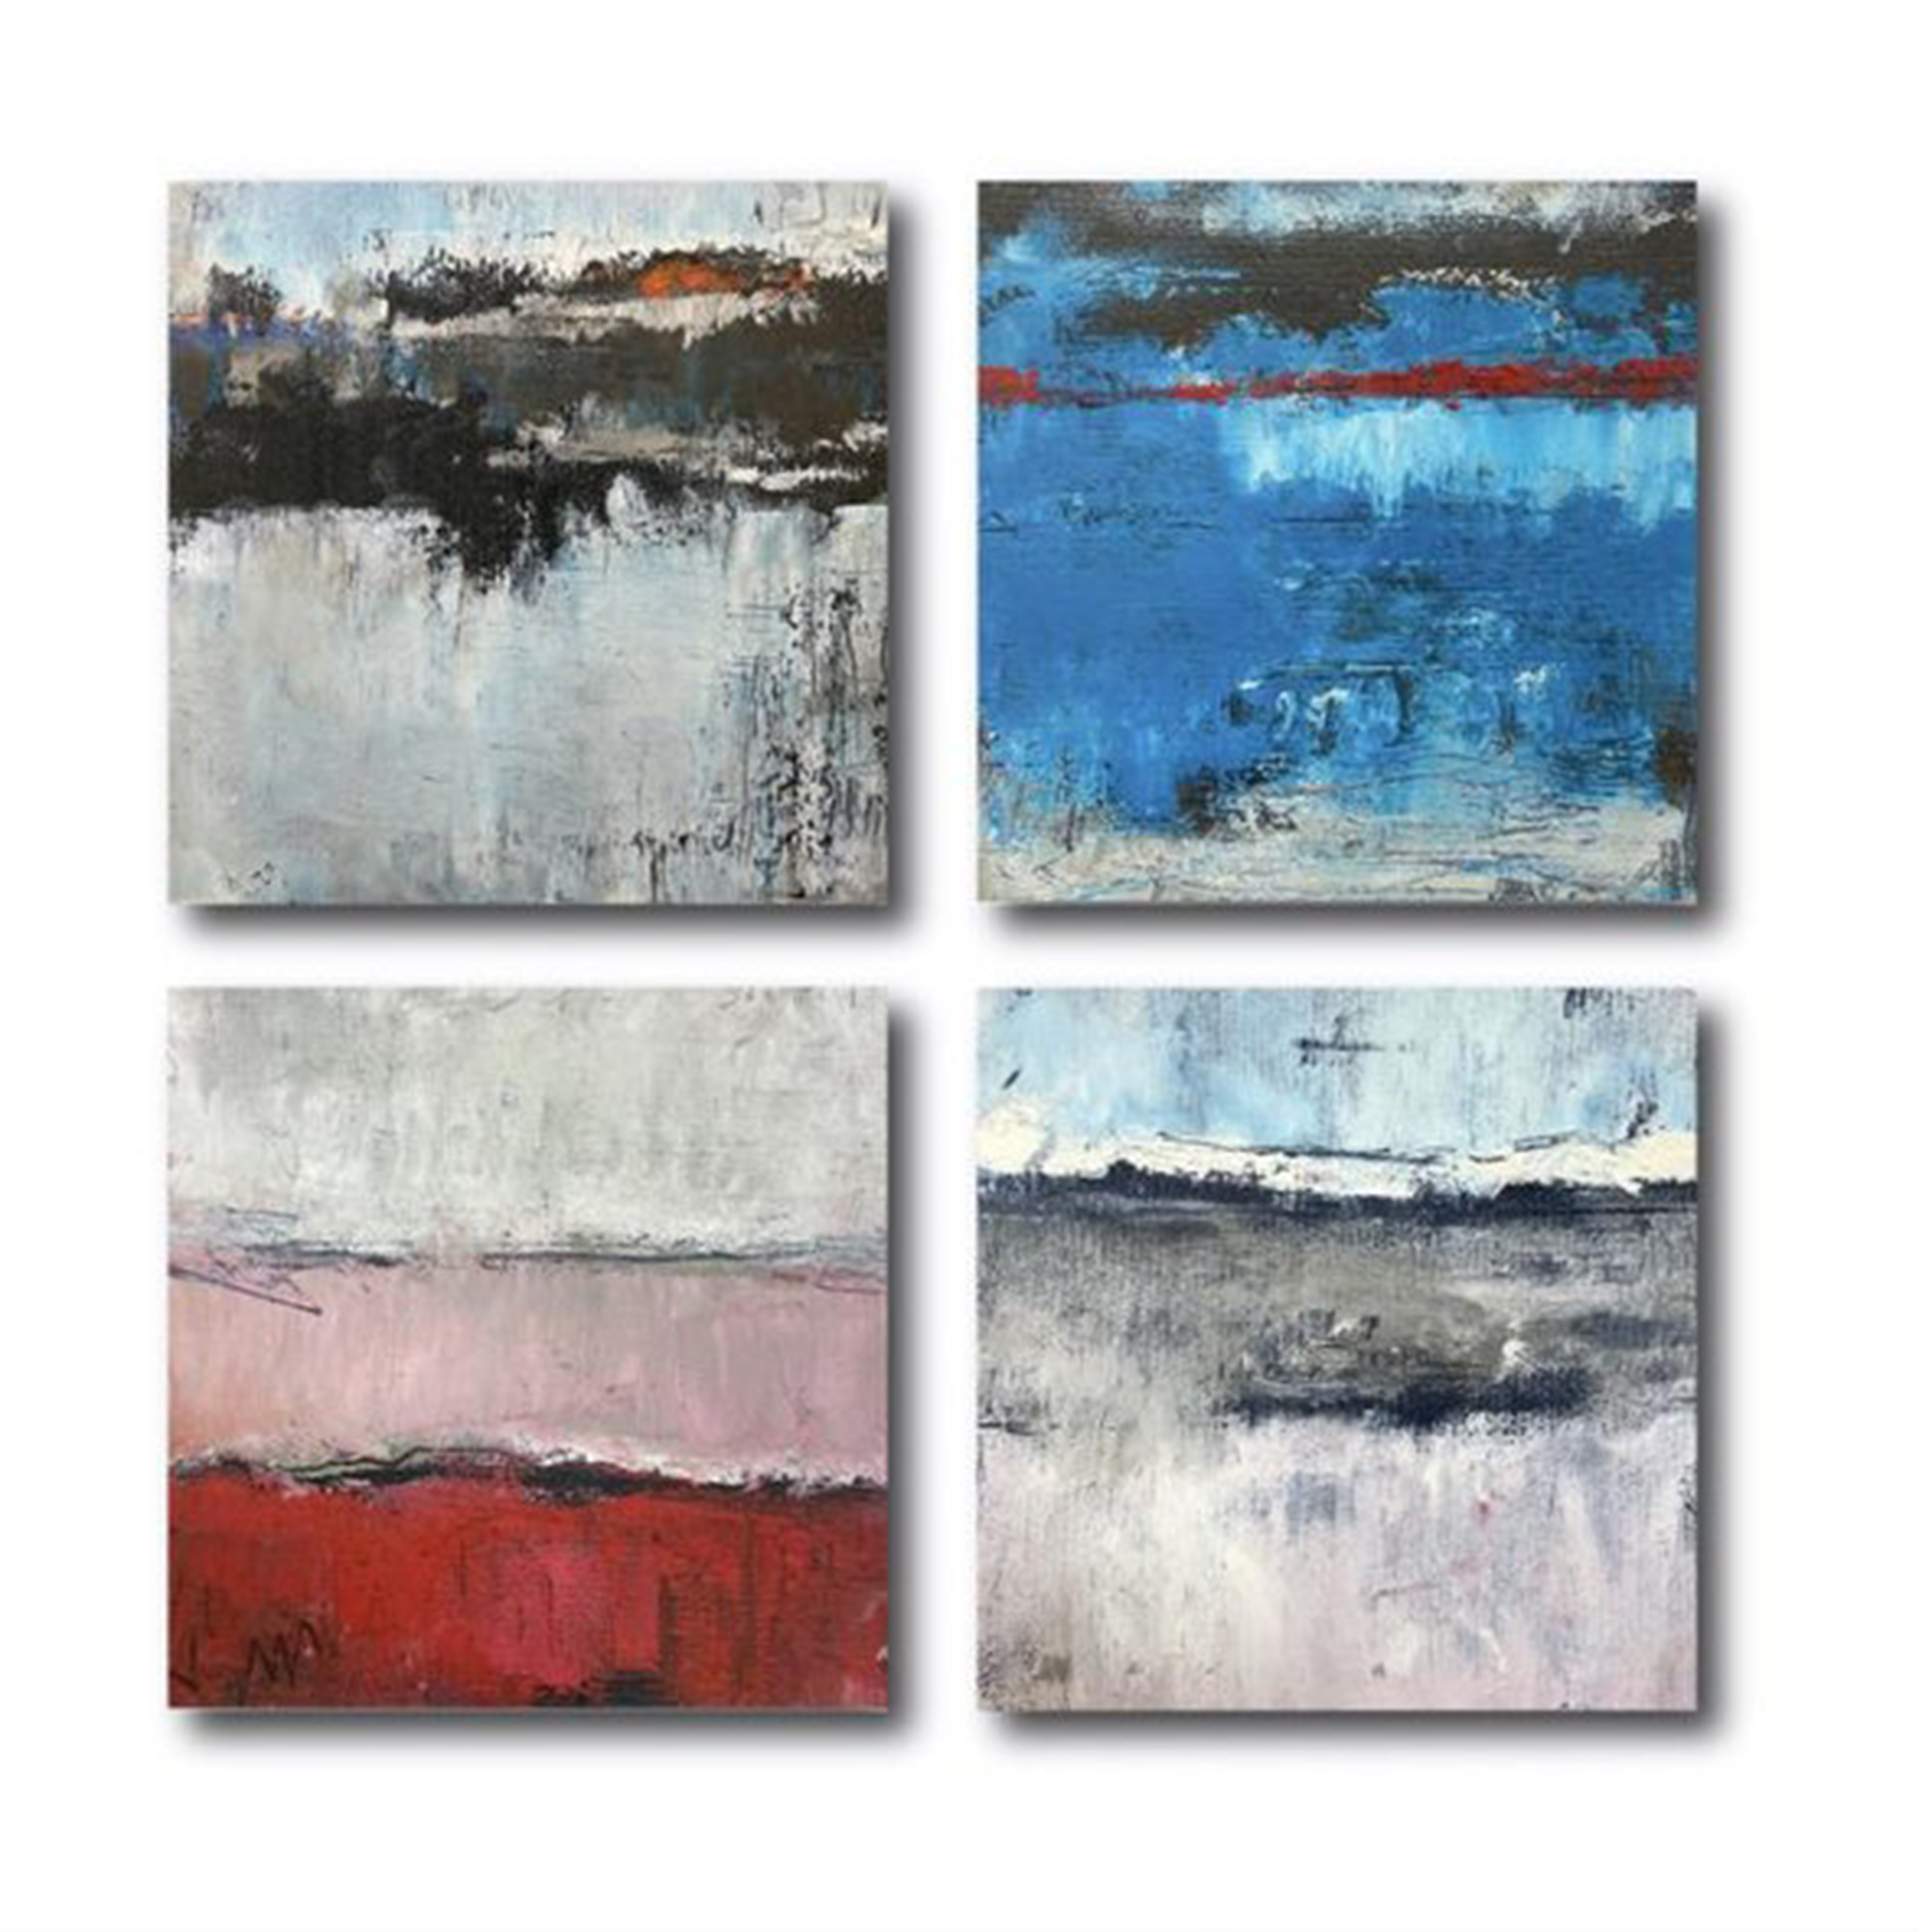 Grid of four square paintings, two by two, in various colors: white, blue, red, pink